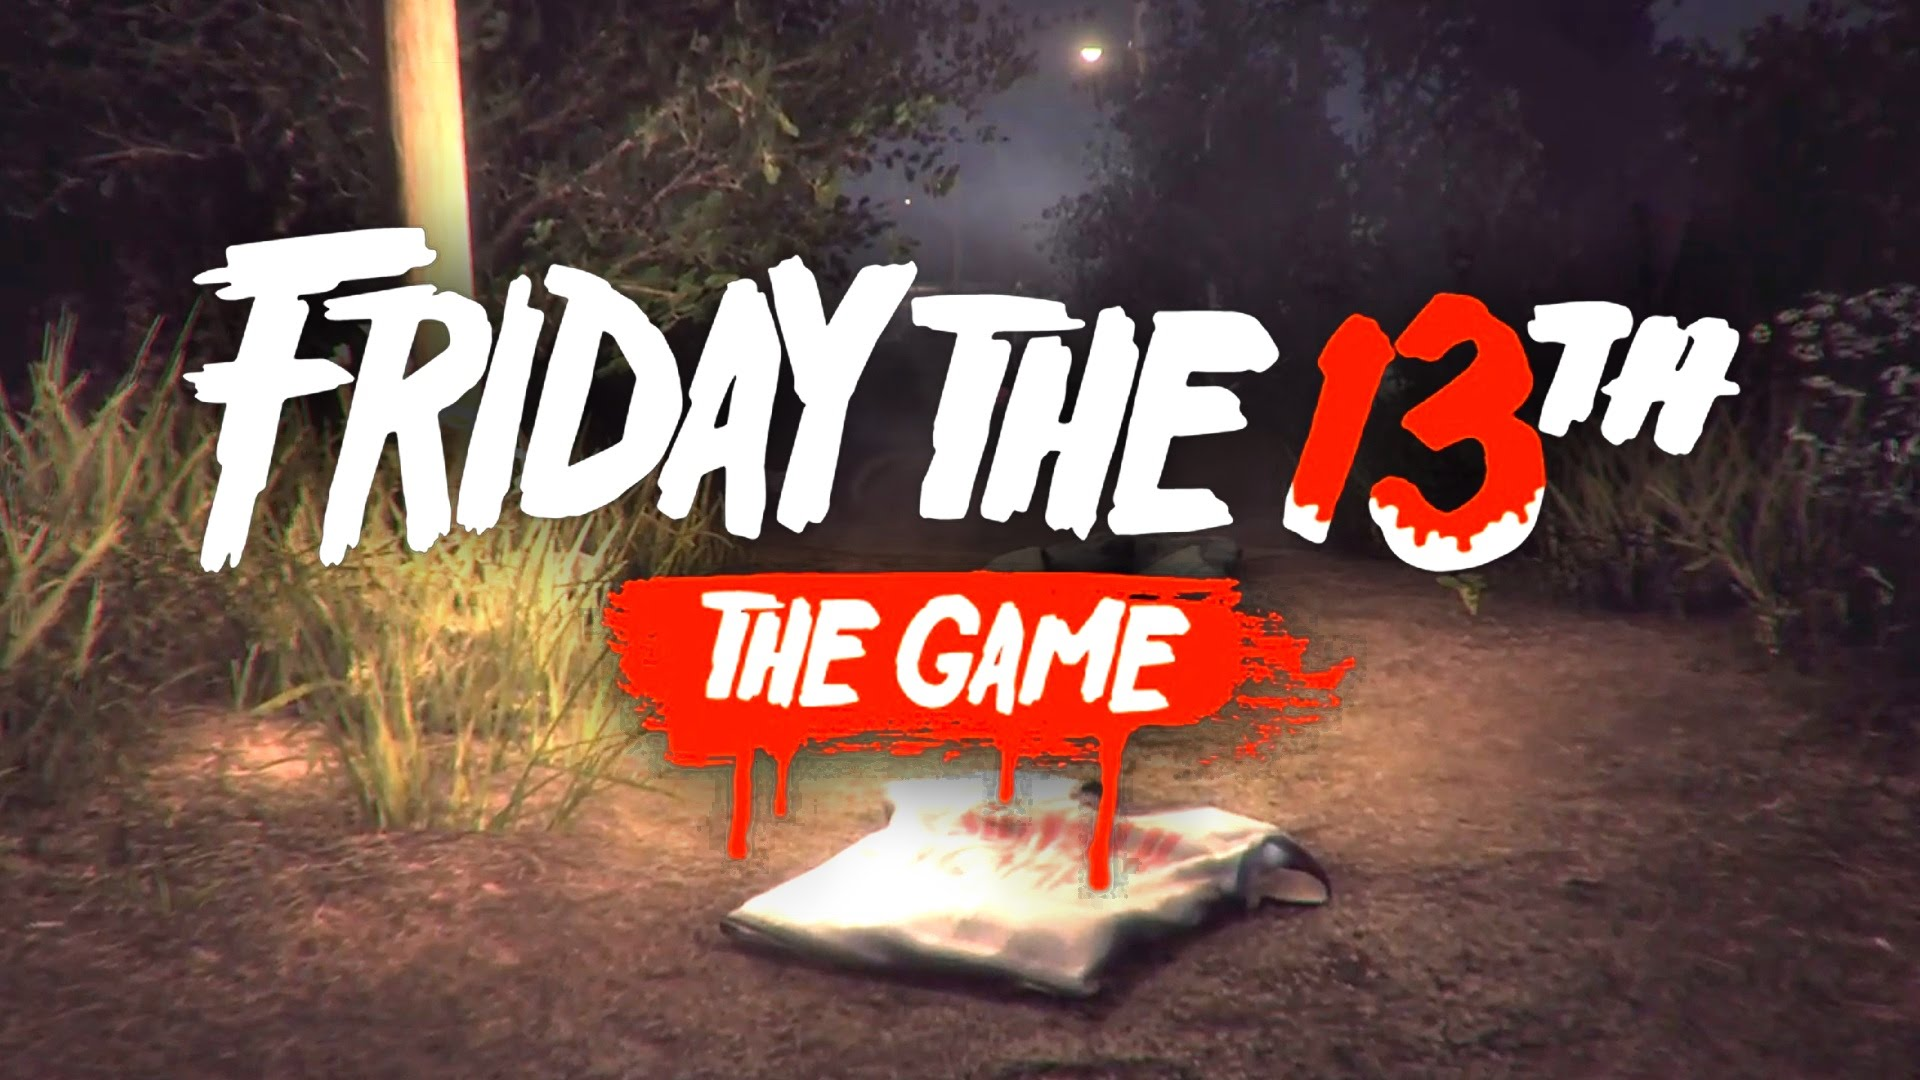 gamer chair for xbox rocket gaming friday the 13th: now you can play as jason voorhees in this new survival horror game   gamers decide